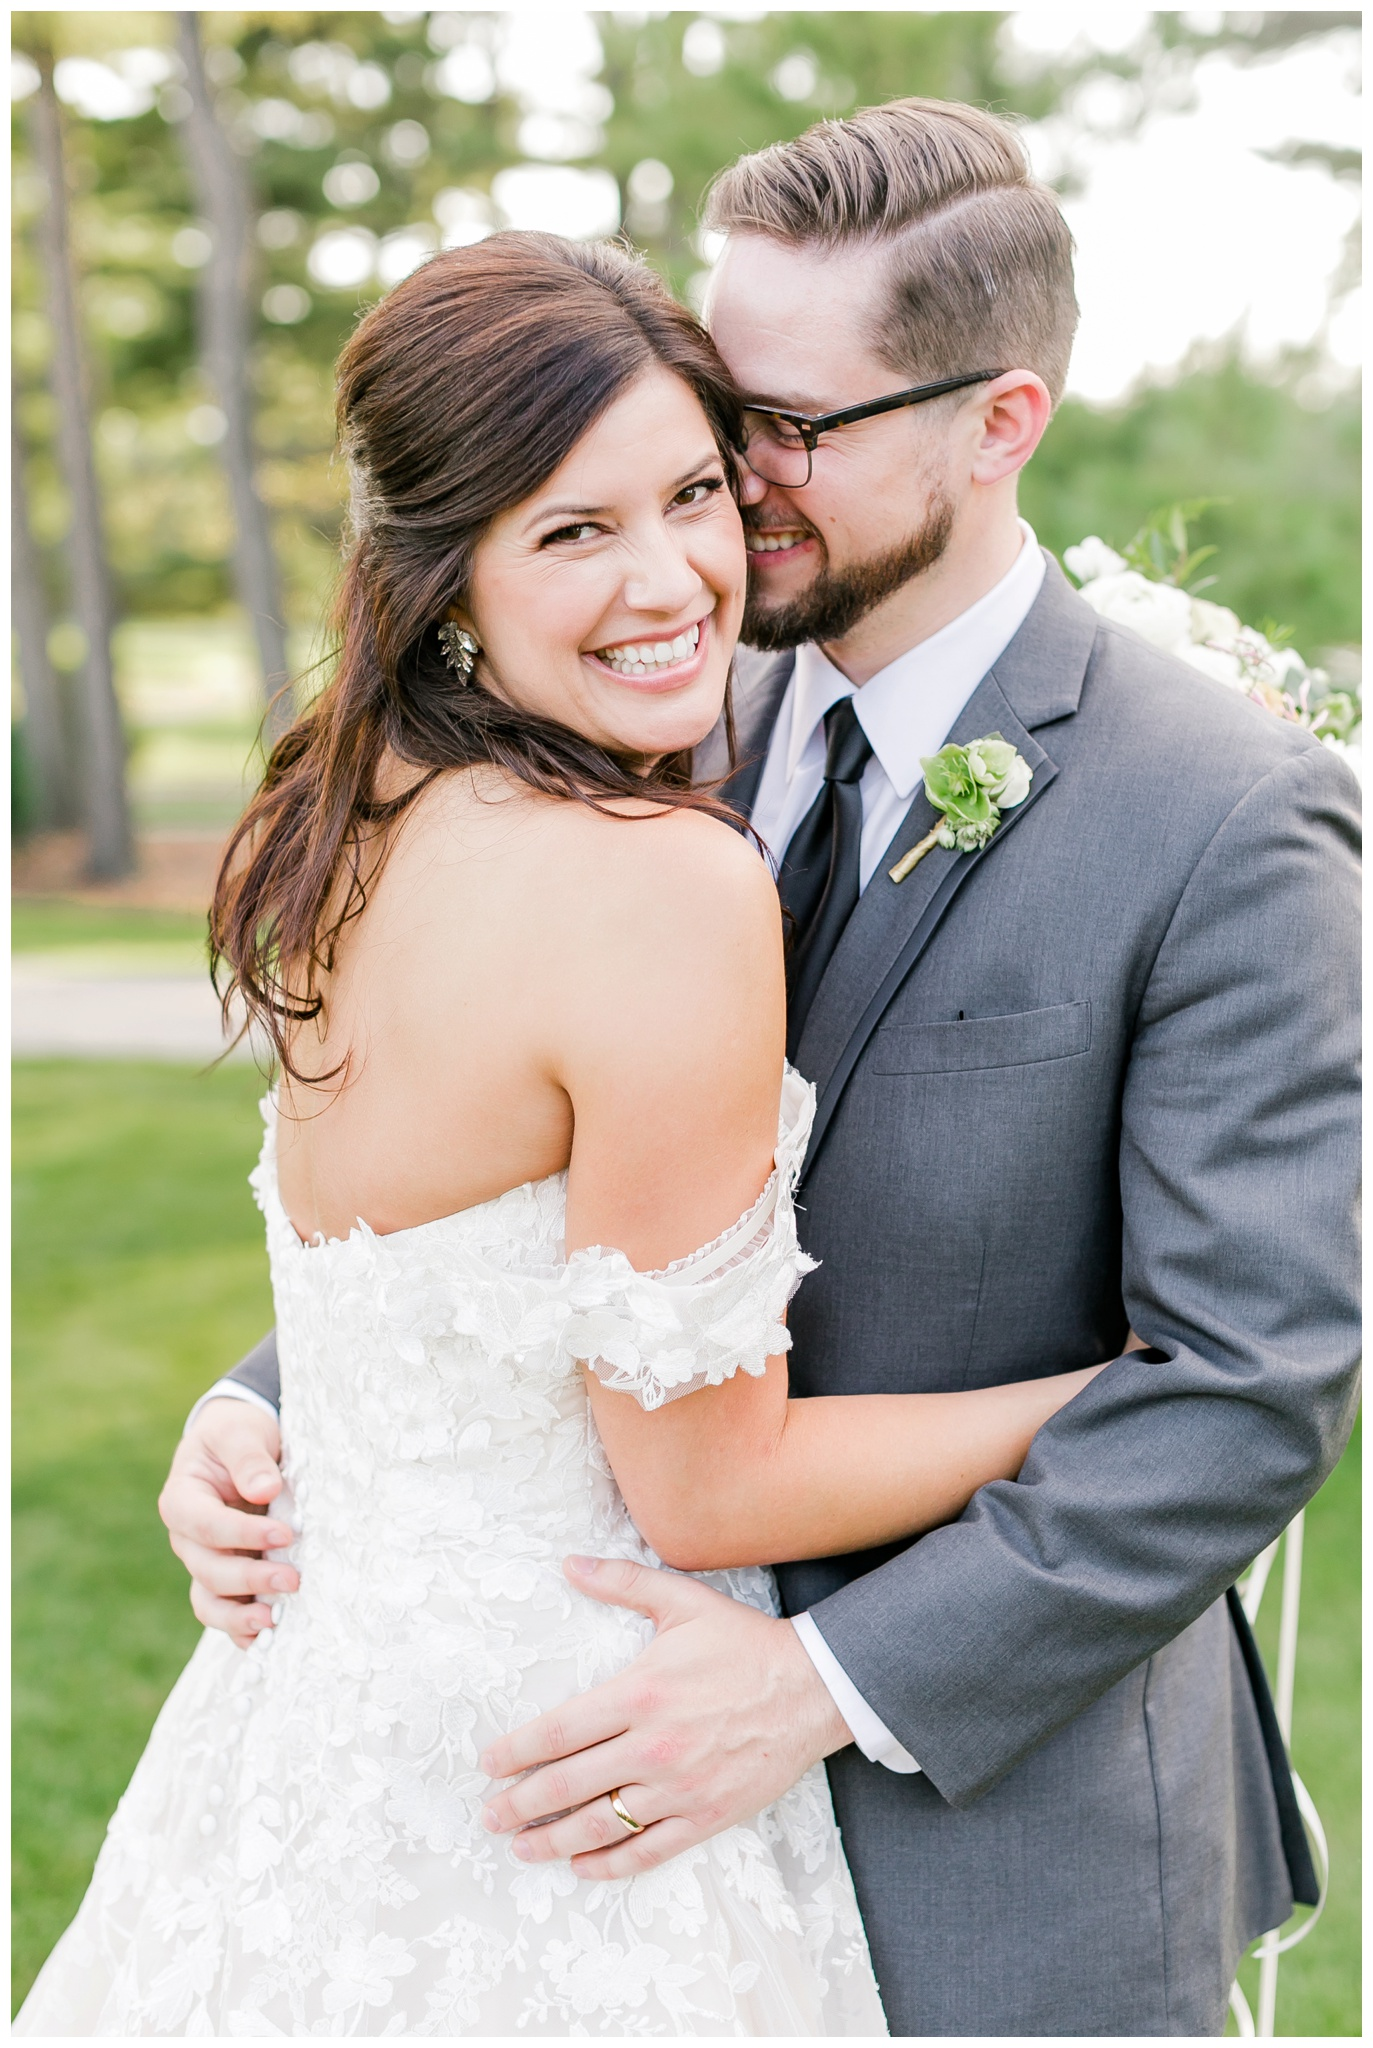 bishops_bay_country_club_wedding_middleton_wisconsin_caynay_photo_4728.jpg